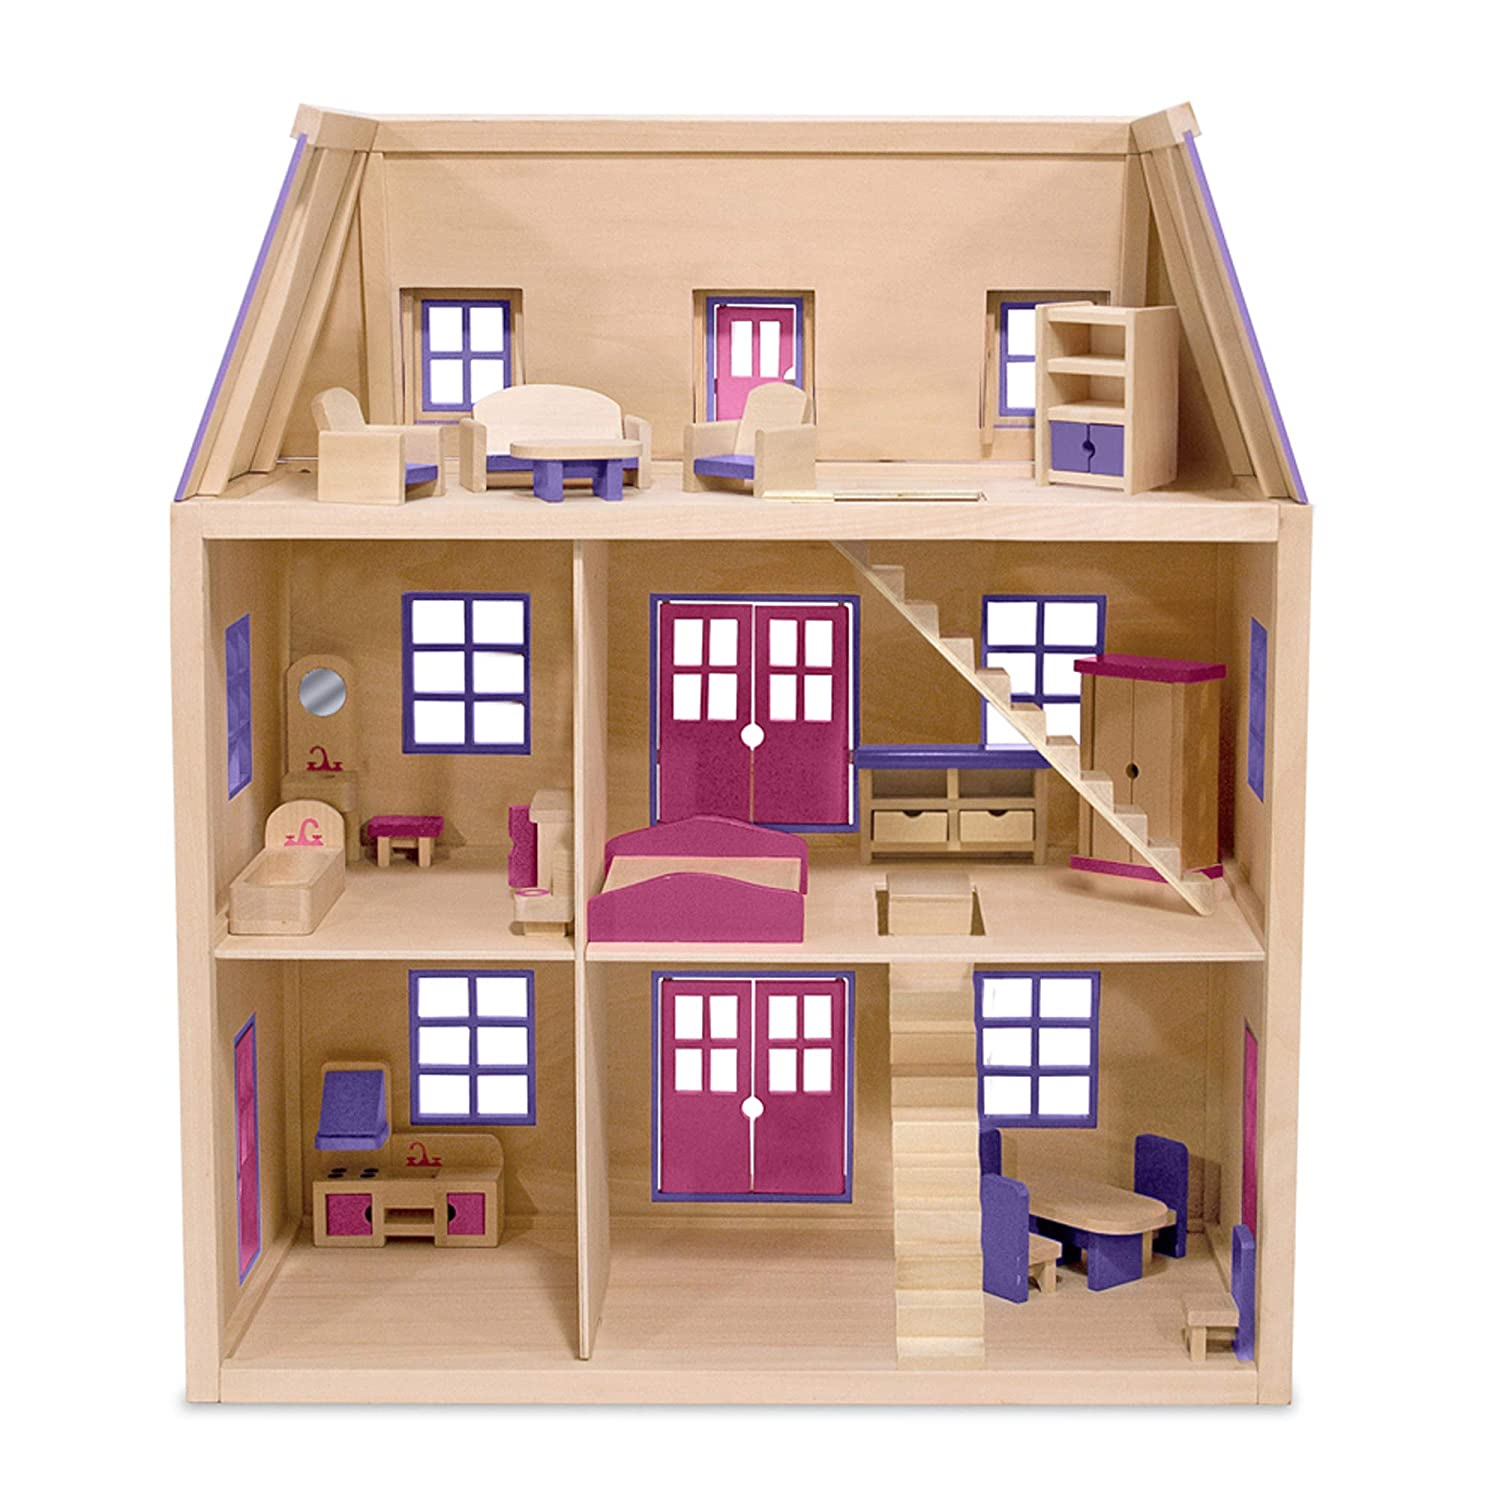 Top 9 Best Dollhouse for Toddlers Reviews in 2019 7